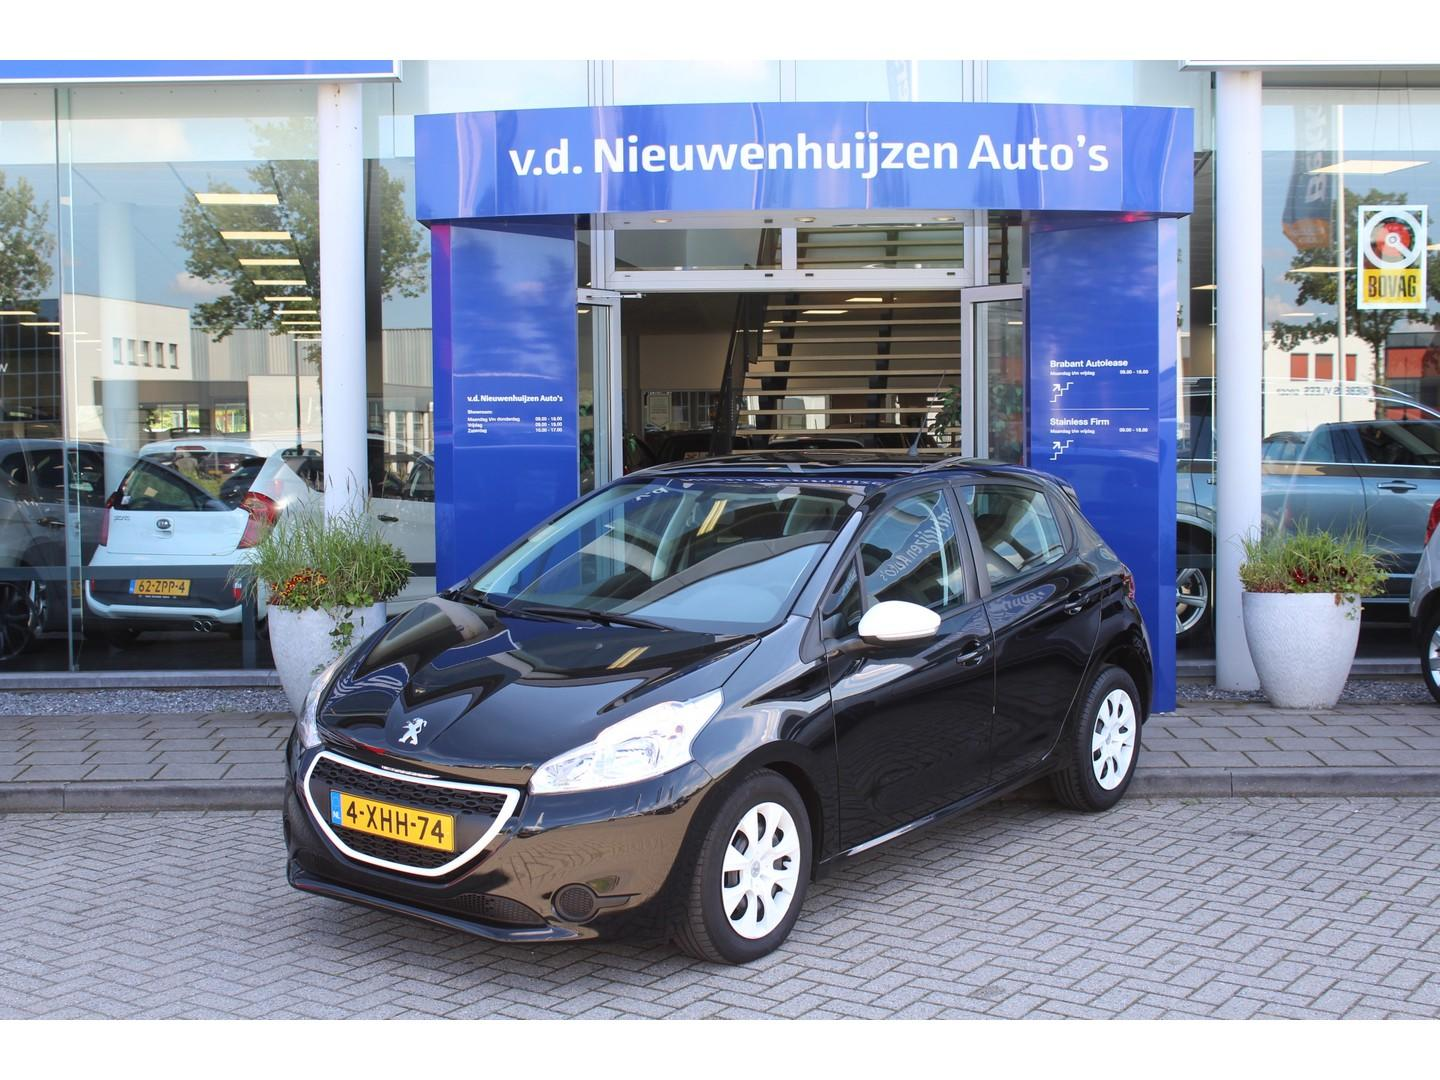 Peugeot 208 1.0 vti like airco, cruise controle info: dhr elbers 0492-588982 of e.elbers@vdnieuwenhuijzen.nl